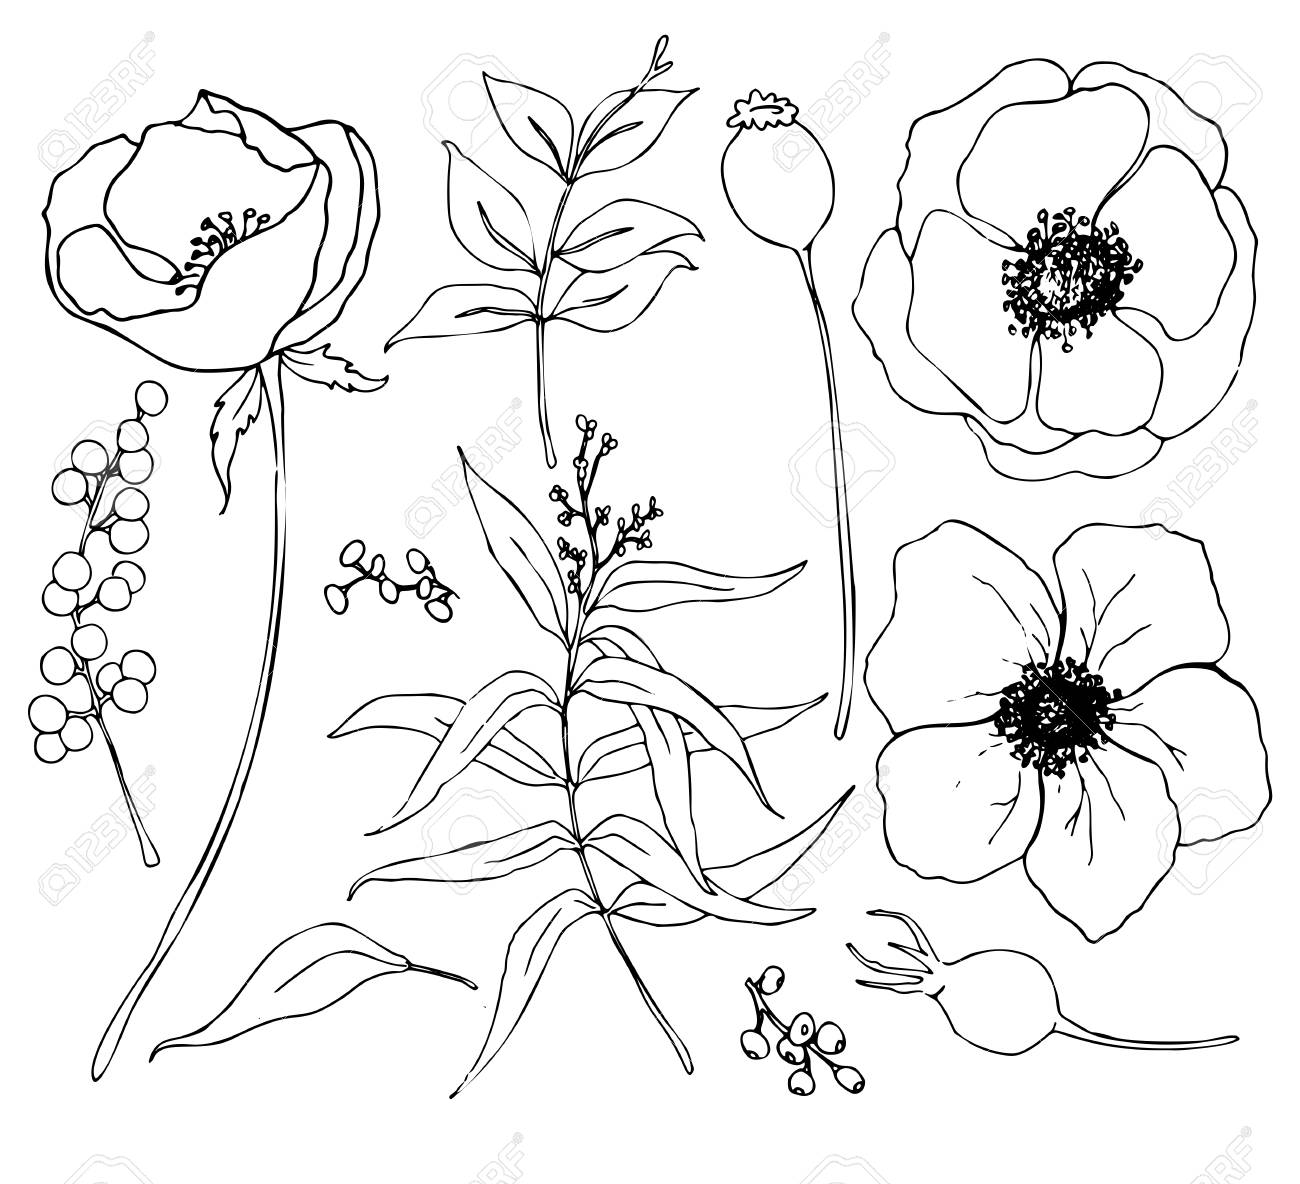 Vector collection of hand drawn plants with eucalyptus and anemone. Botanical set of sketch flowers and branches with eucalyptus leaves isolated on white background for design, print or fabric. - 119248086